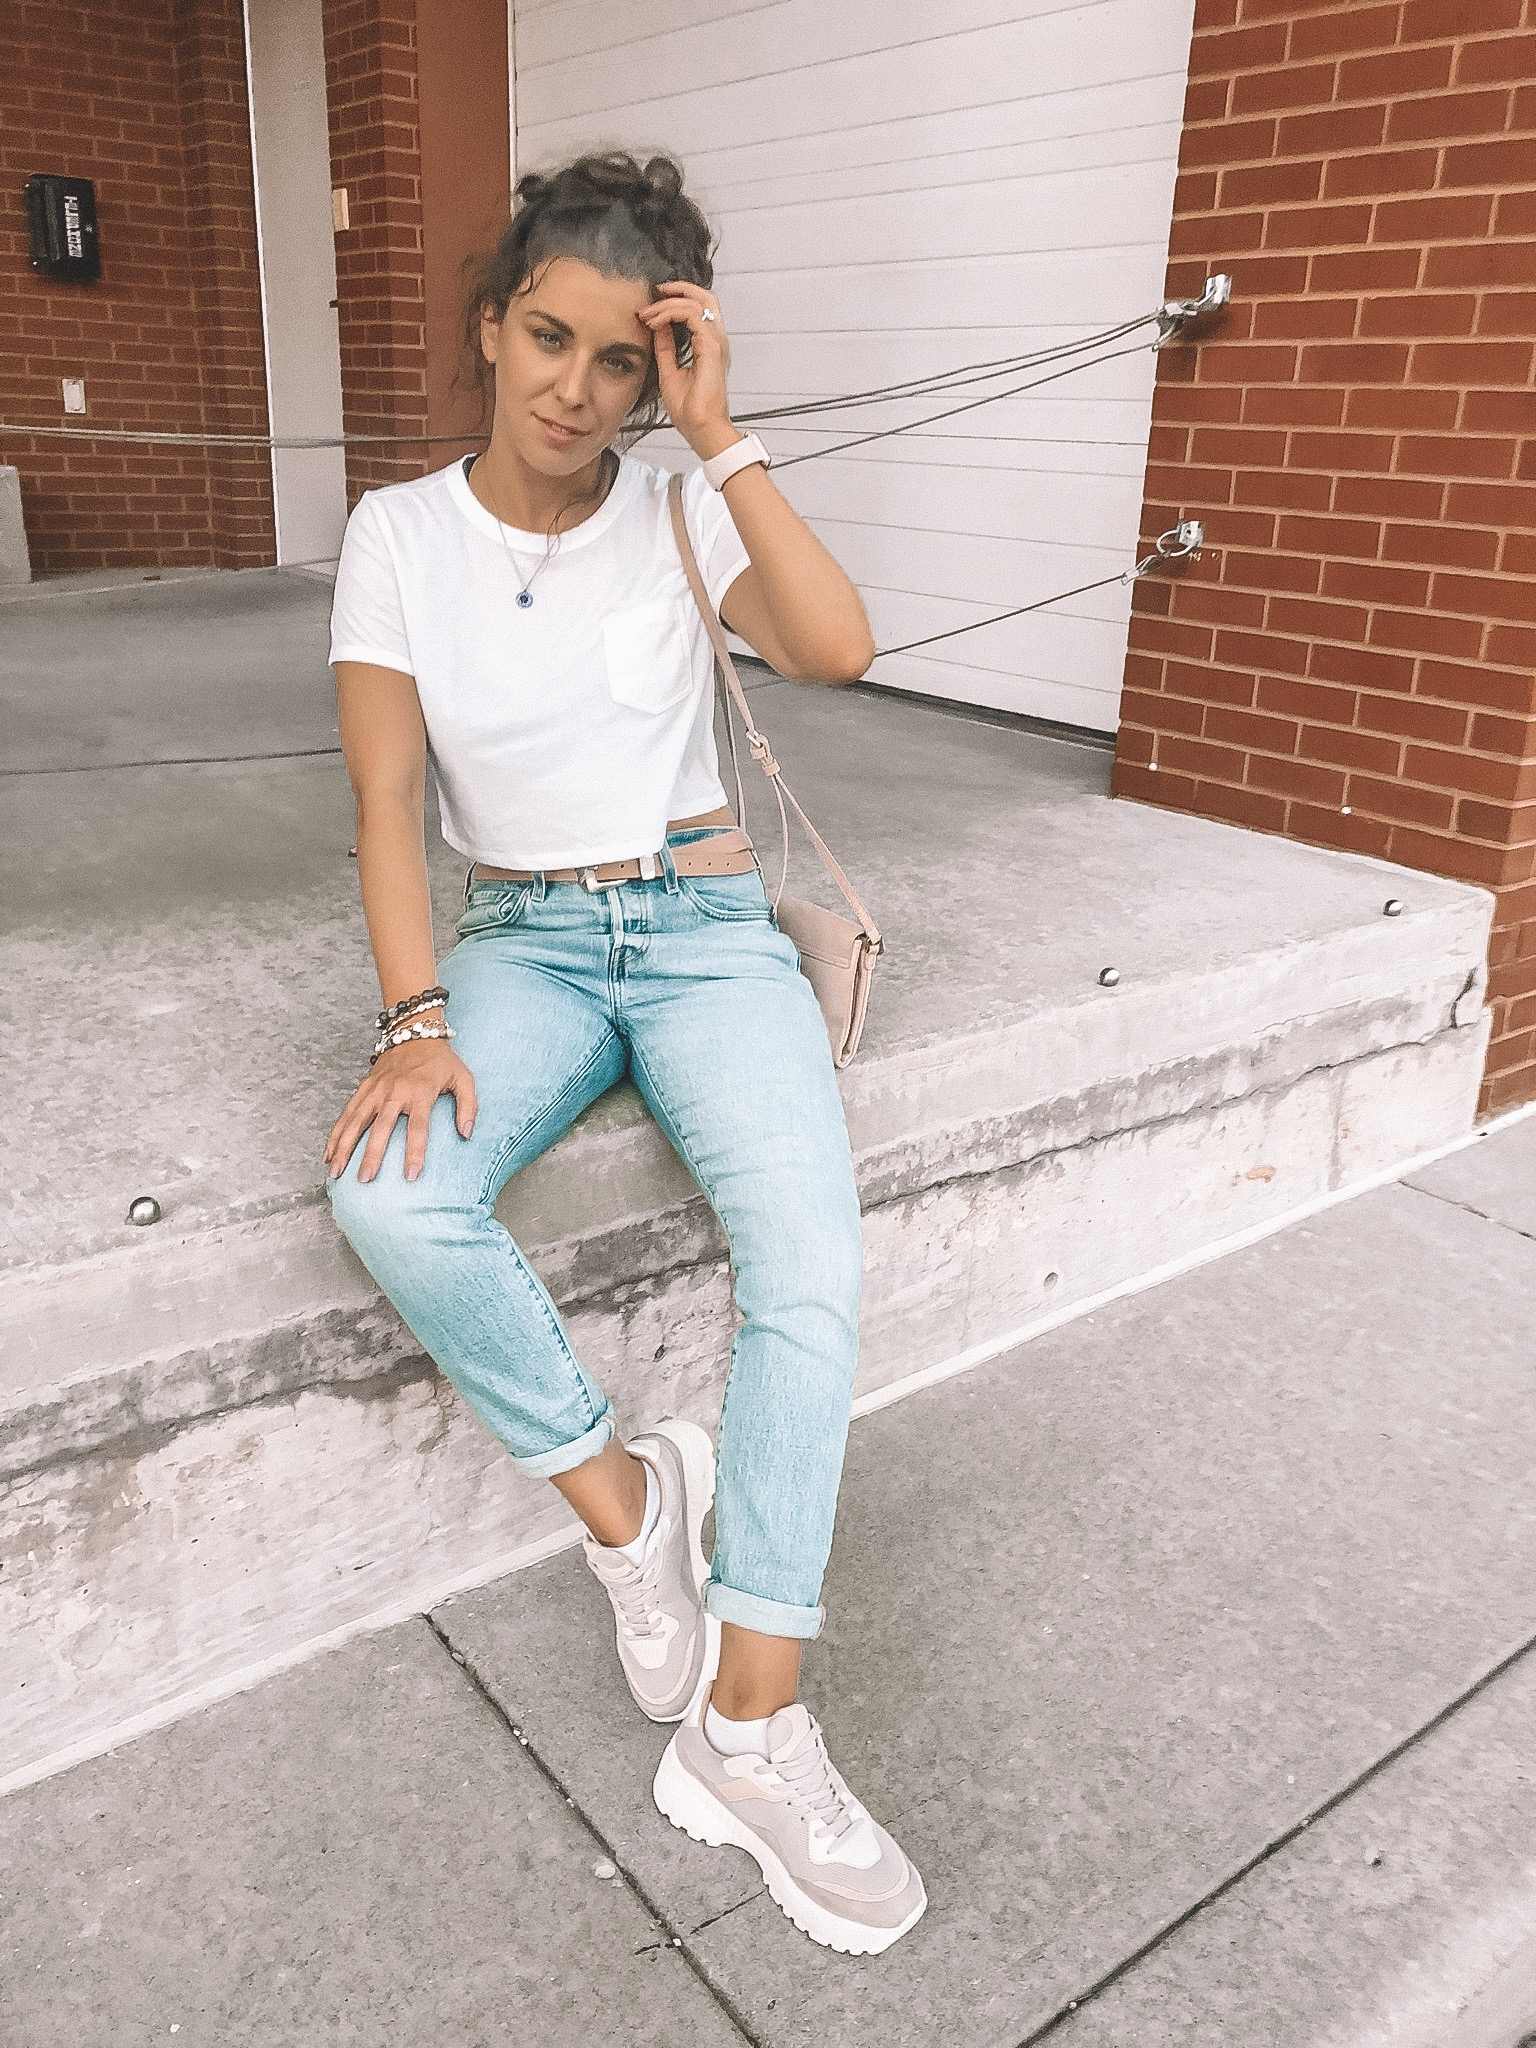 Chunky Neutral Sneakers | Dad Shoe Trend